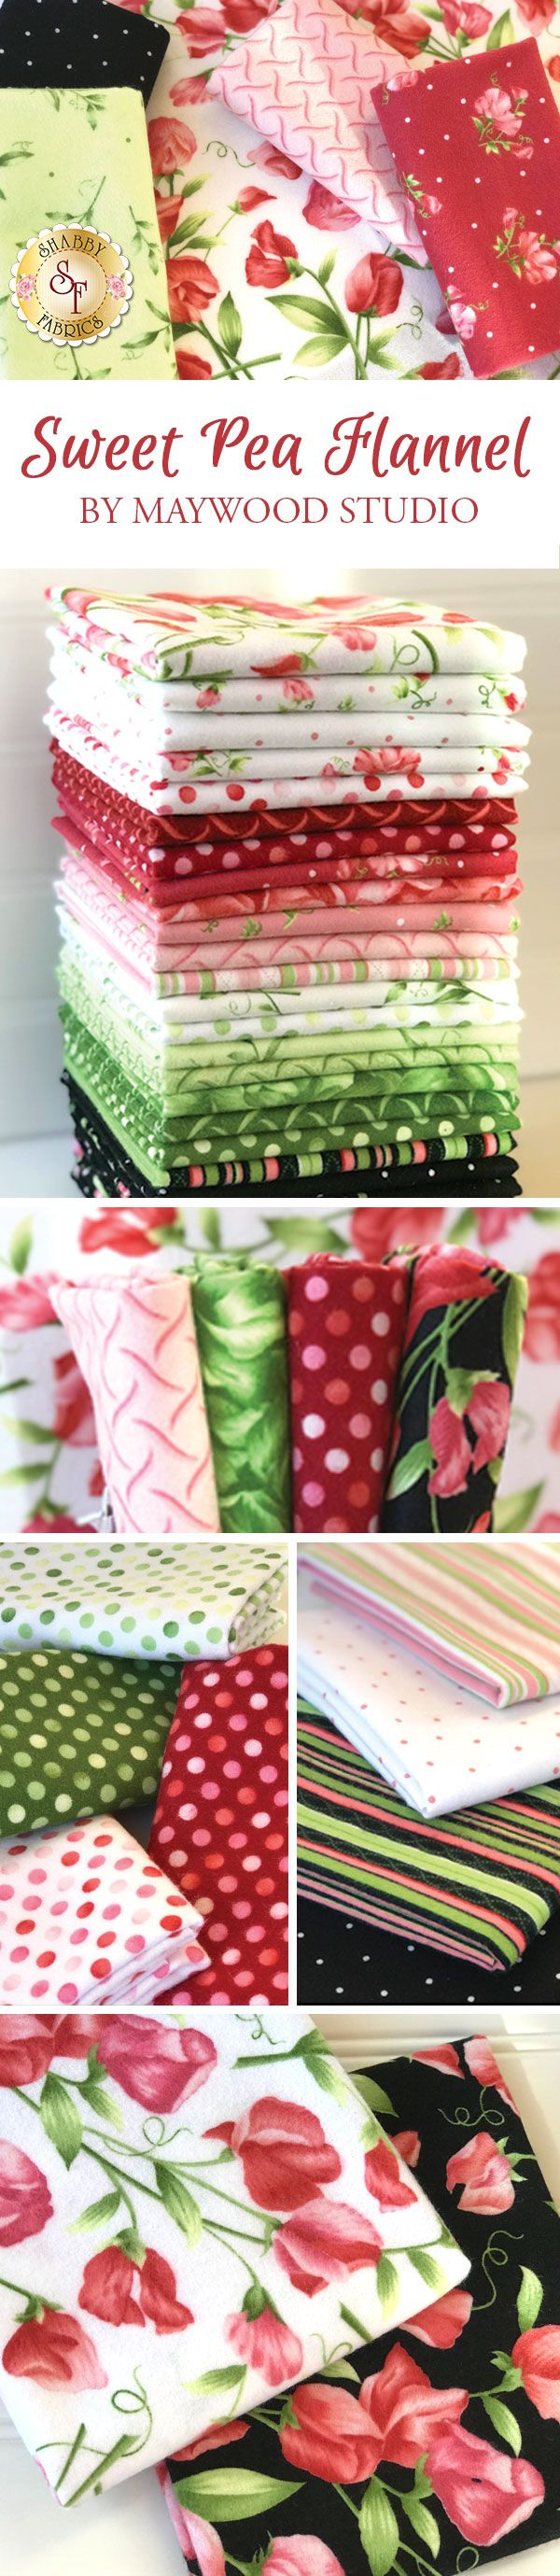 Sweet Pea Flannel from Maywood Studio Fabrics is an adorable flannel collection available at Shabby Fabrics